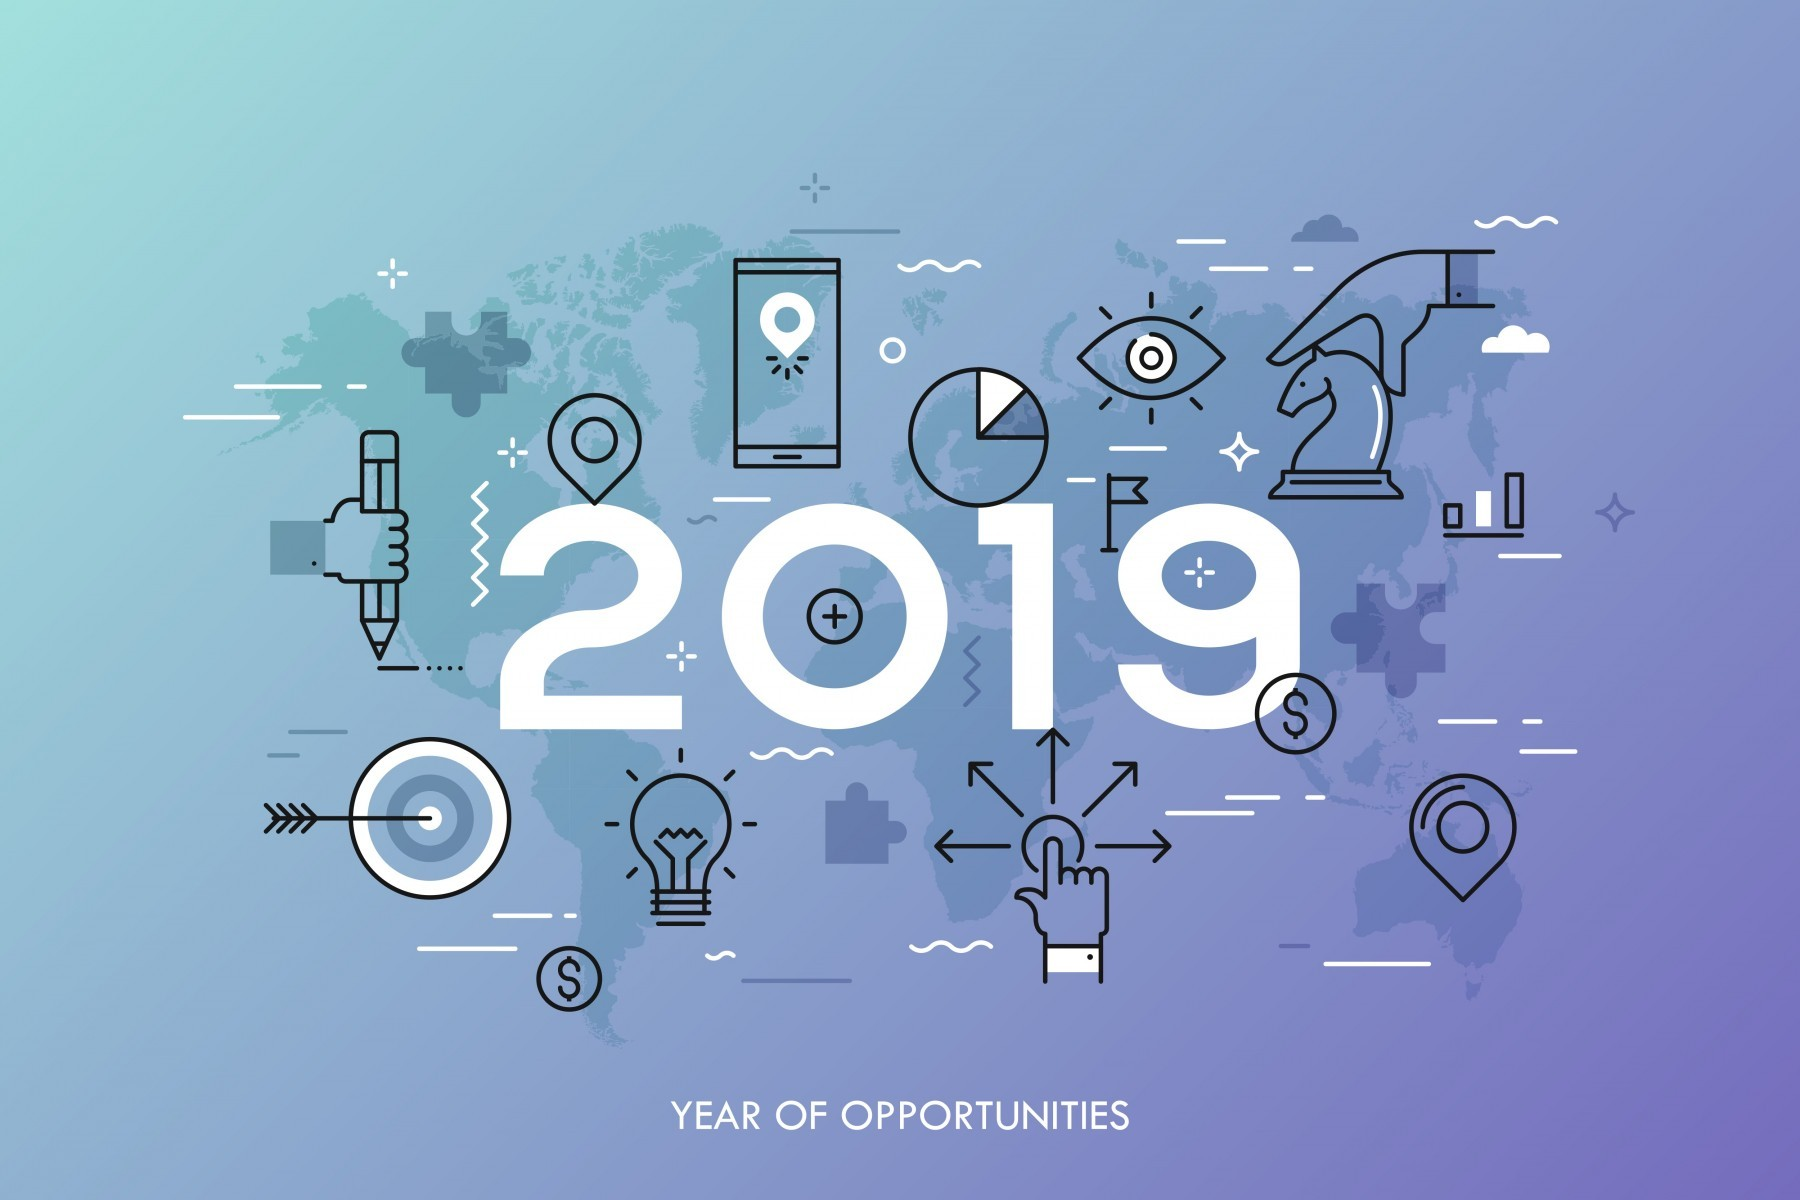 1920_shutterstock-yearofopportunities-115500